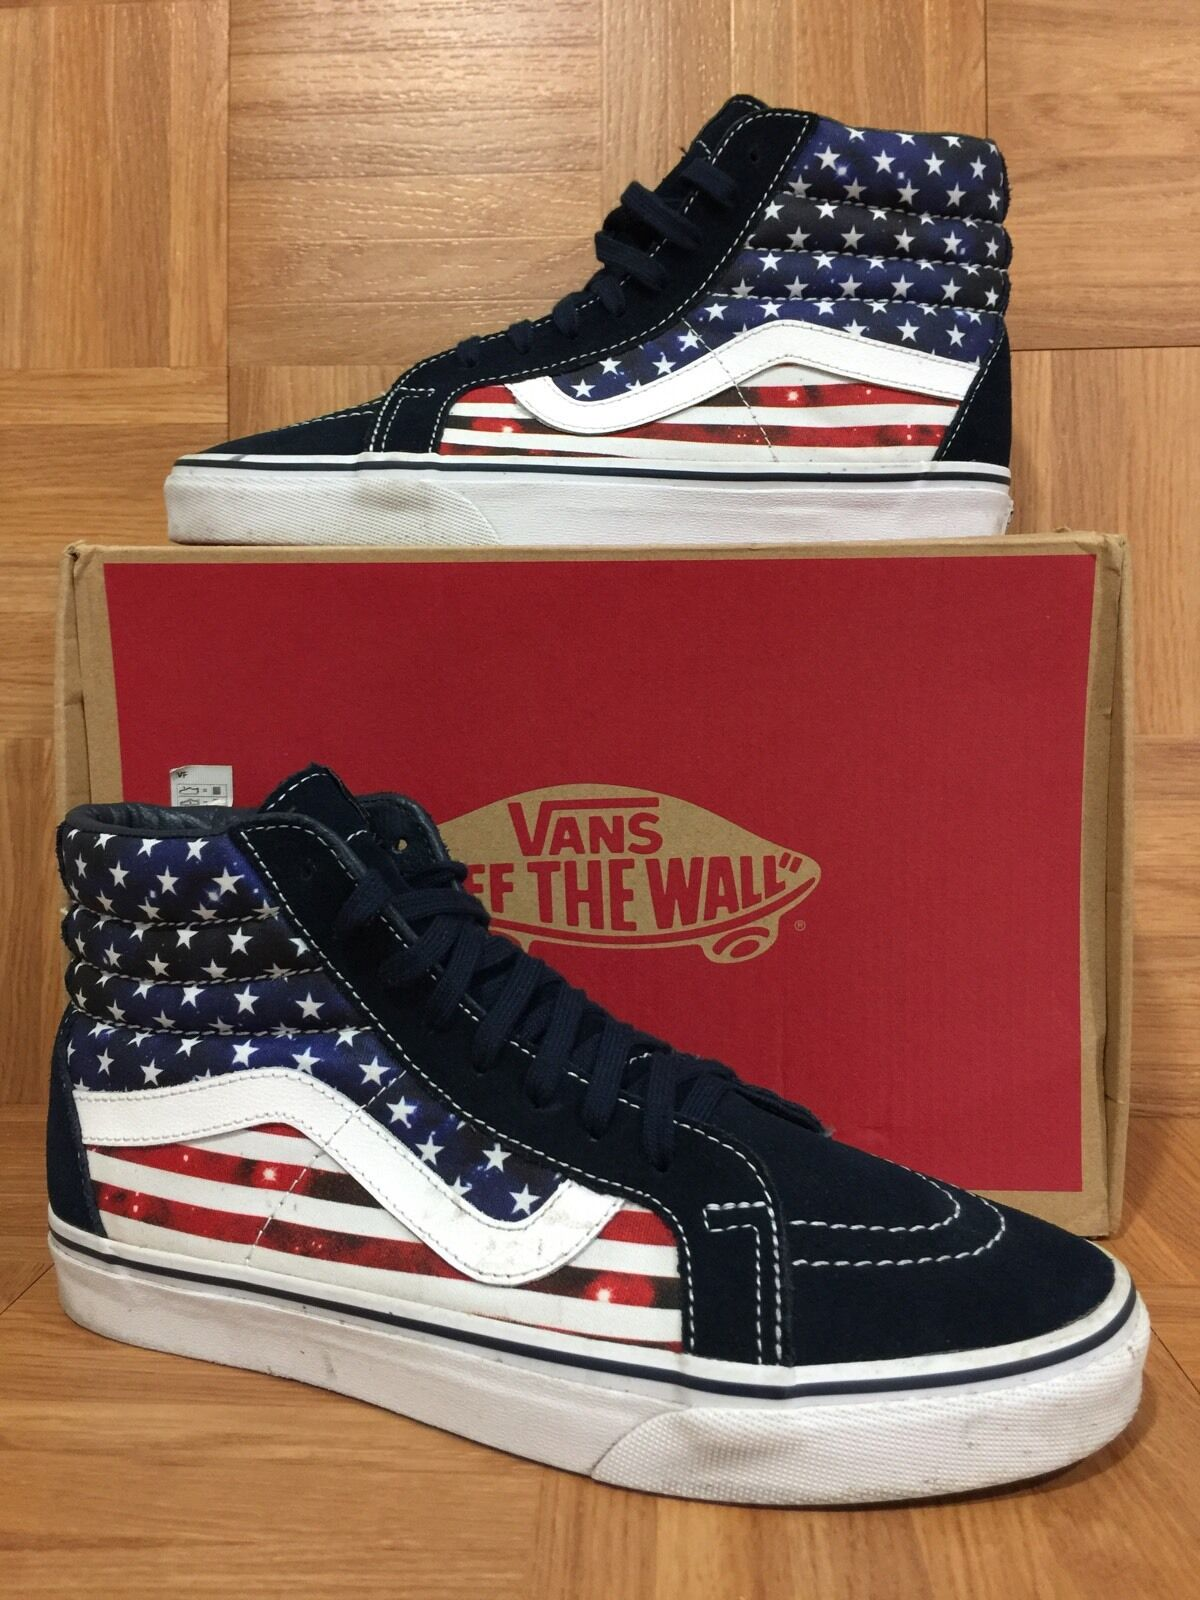 american vans shoes OFF 64% - Online Shopping Site for Fashion ...